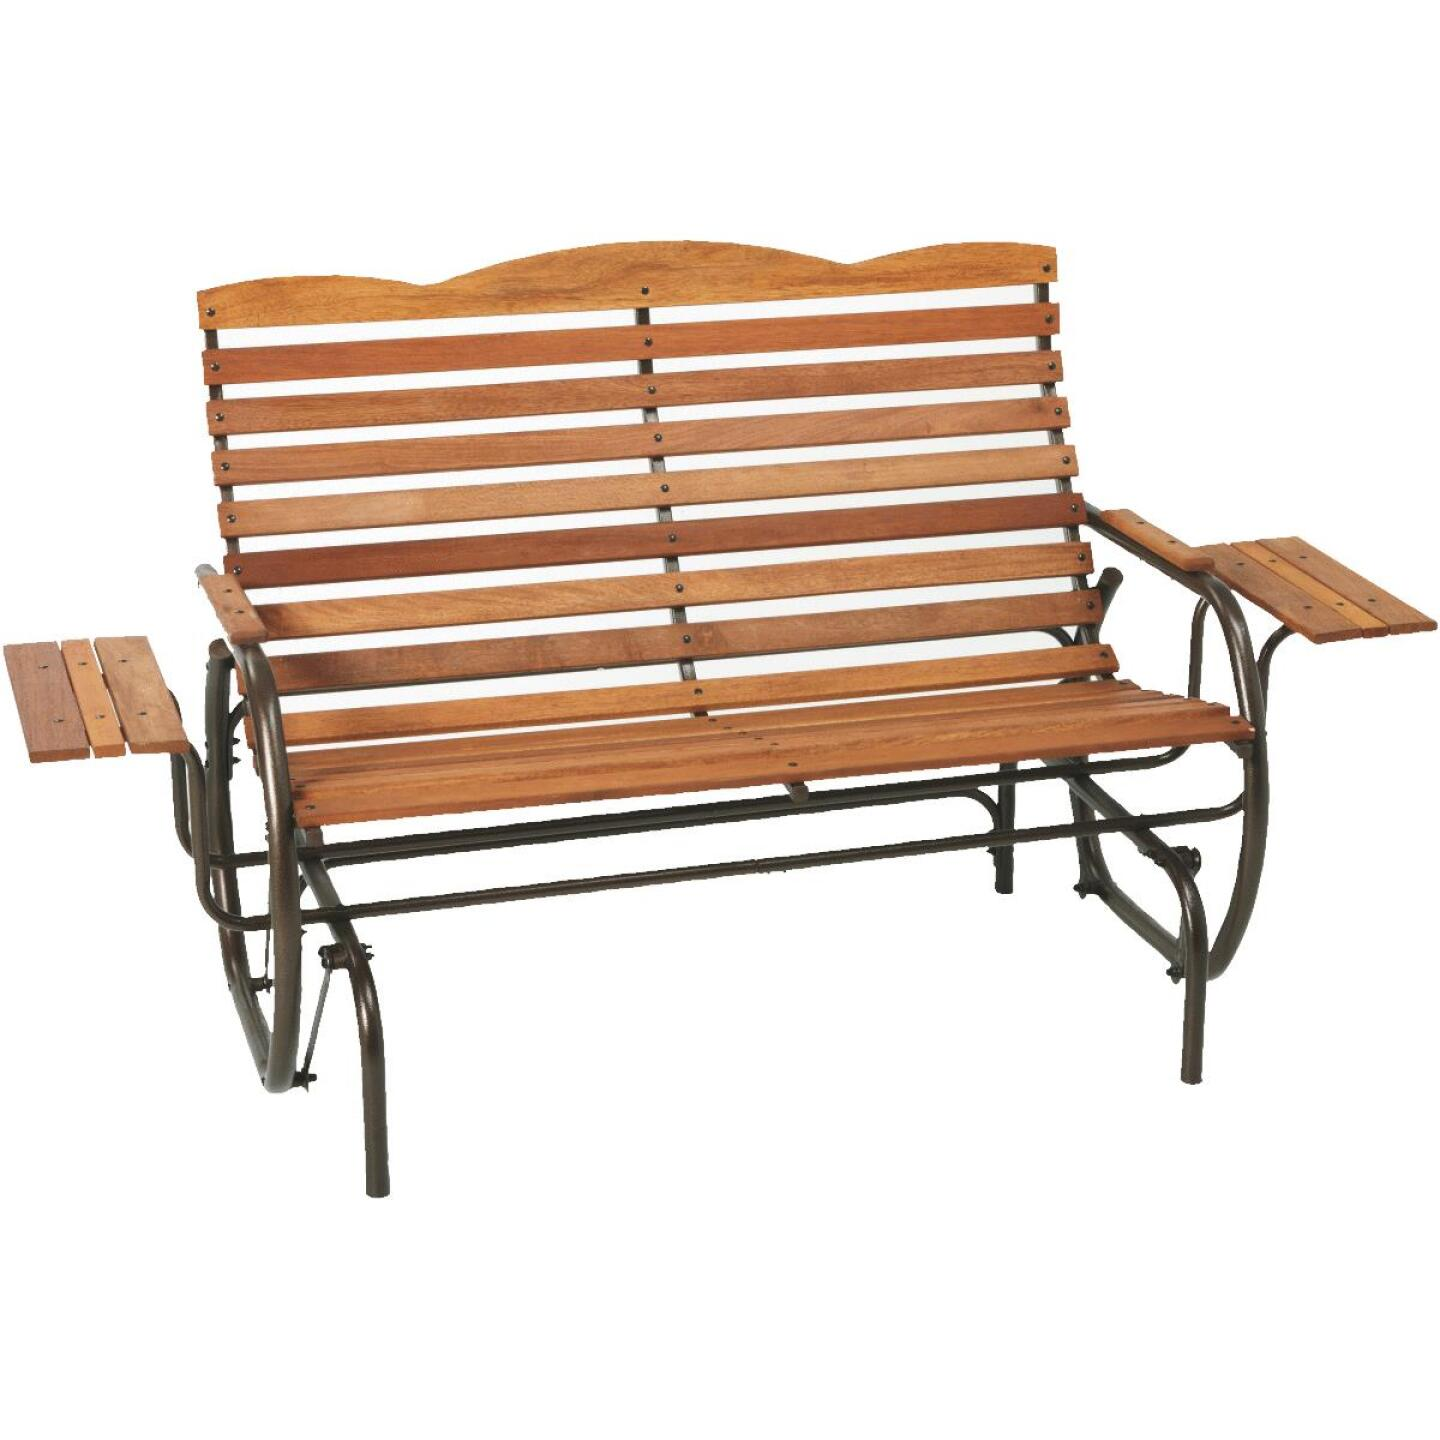 Jack Post Country Garden Bronze Hi-Back Glider with Tray Image 1